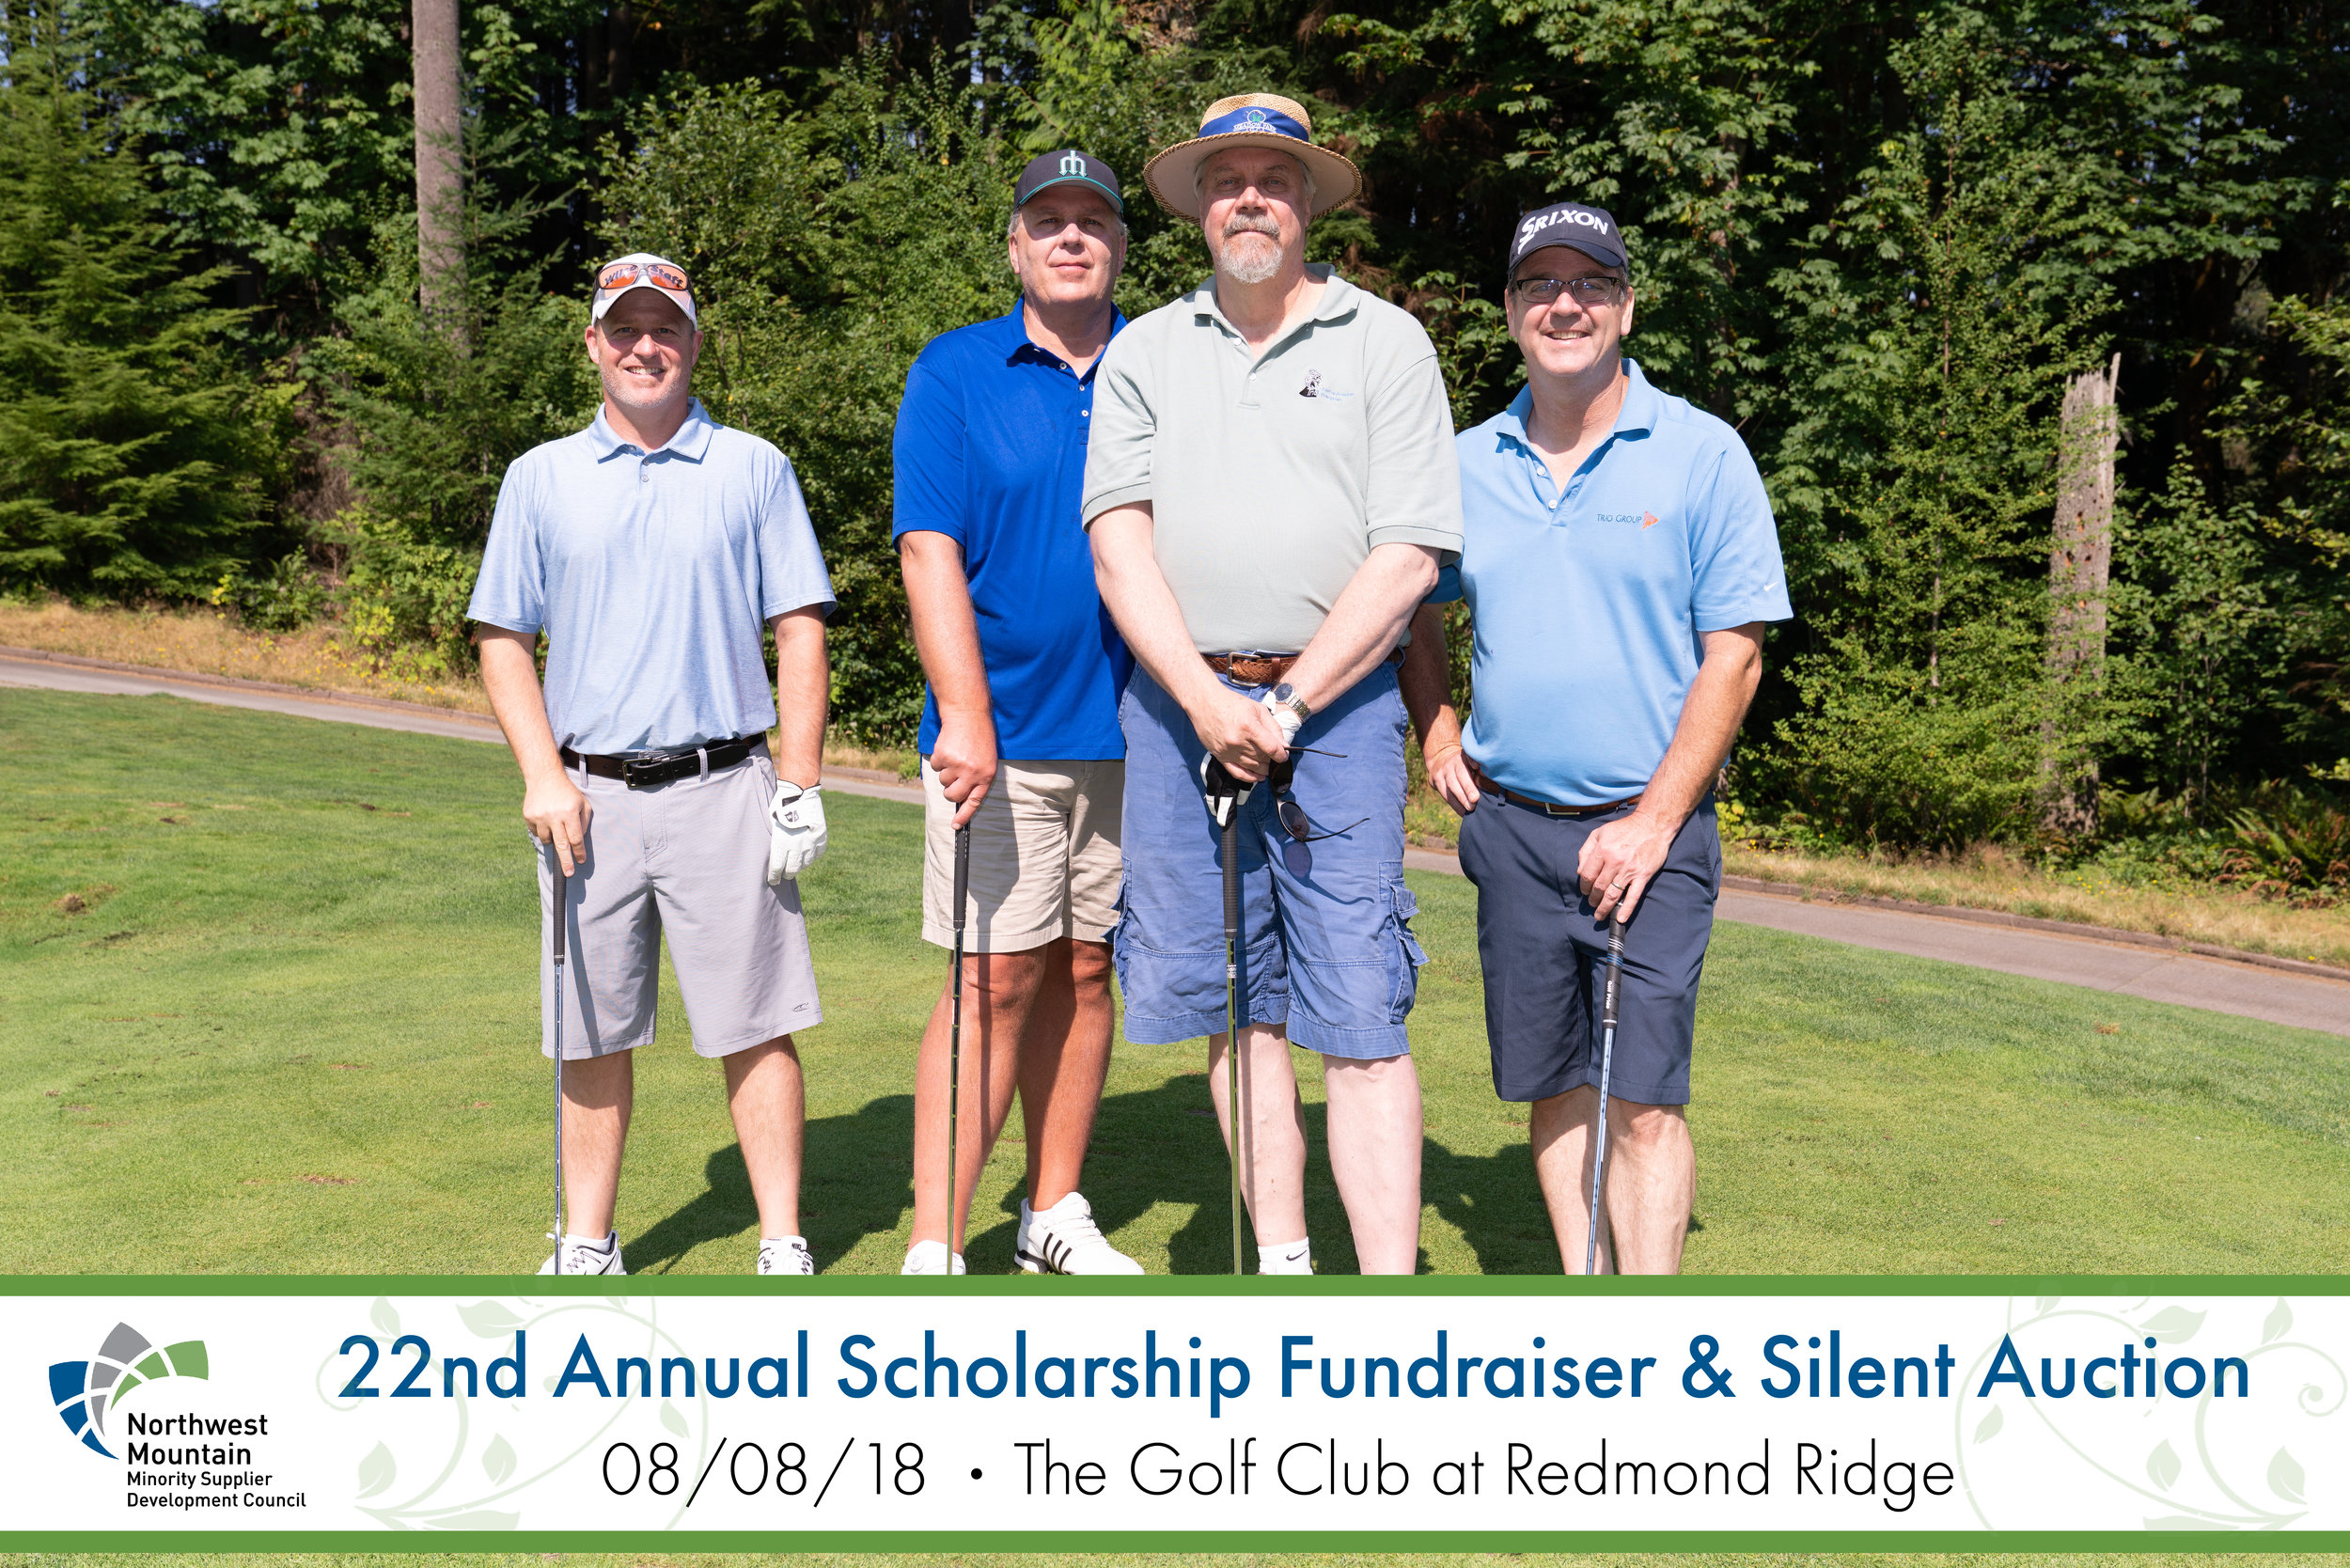 Trio also designed the print fundraiser programs, and the photography lower third graphics for this year's event.